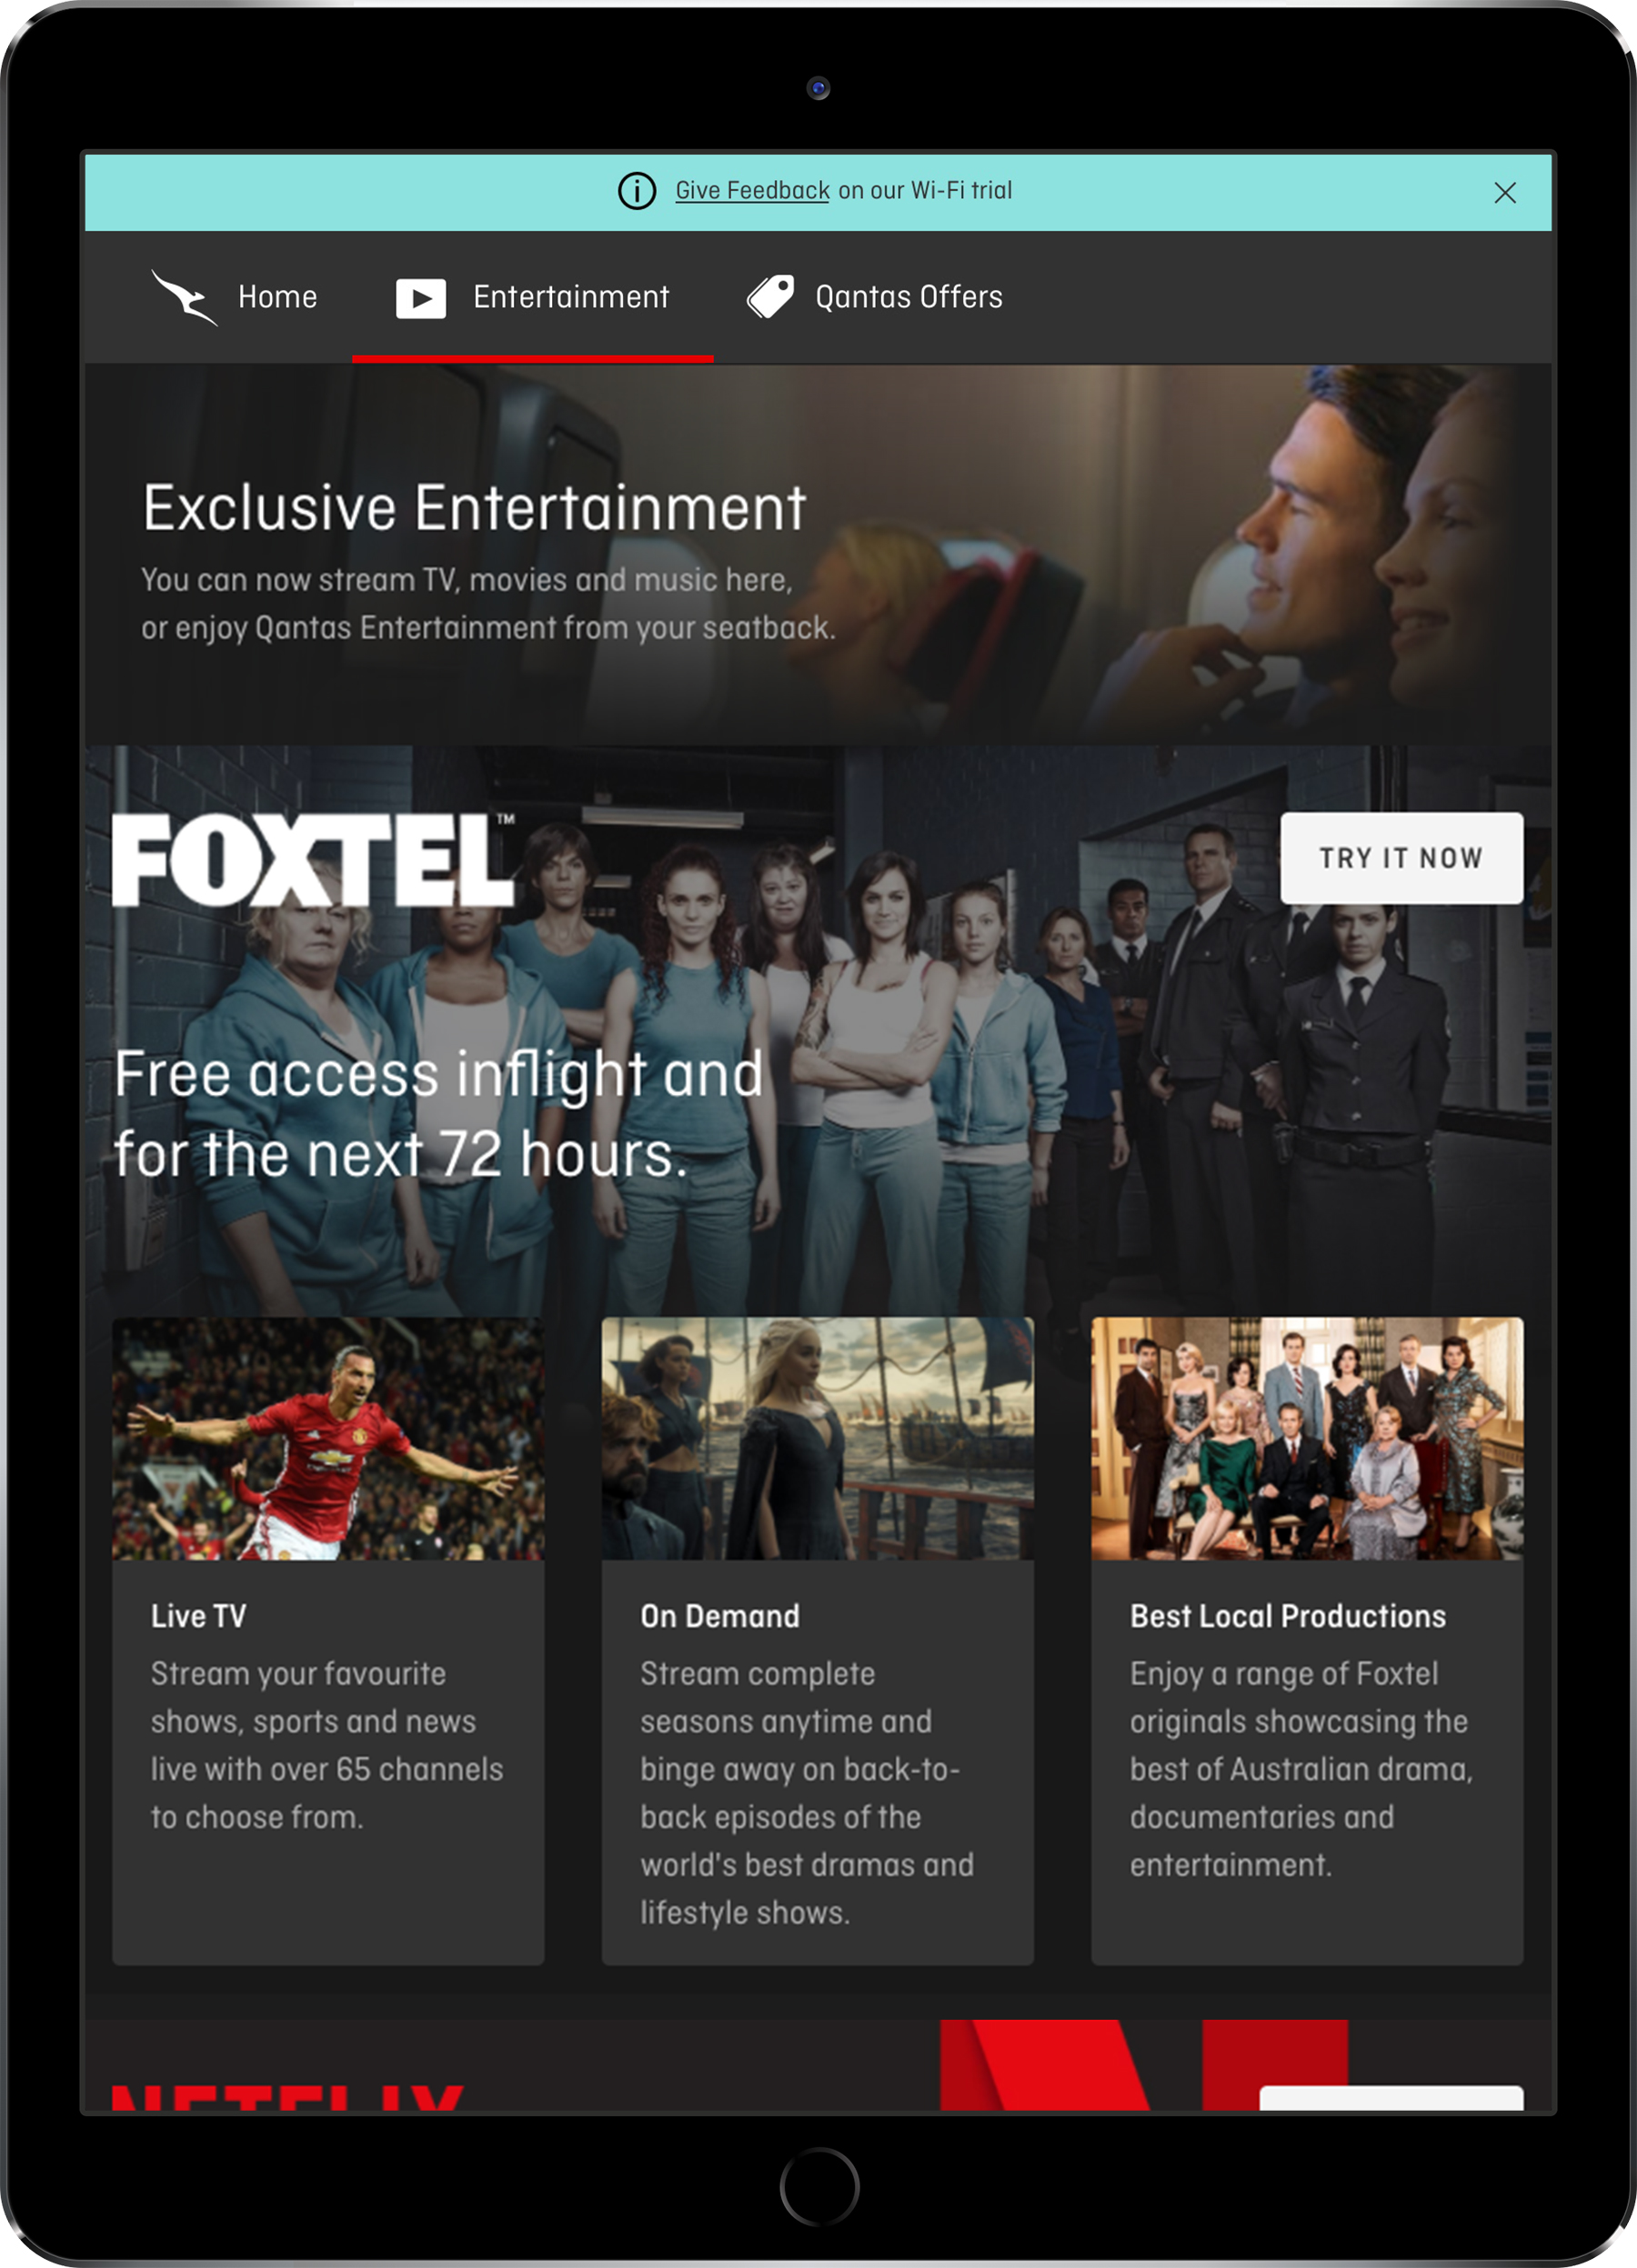 QF WIFI - entertainment page